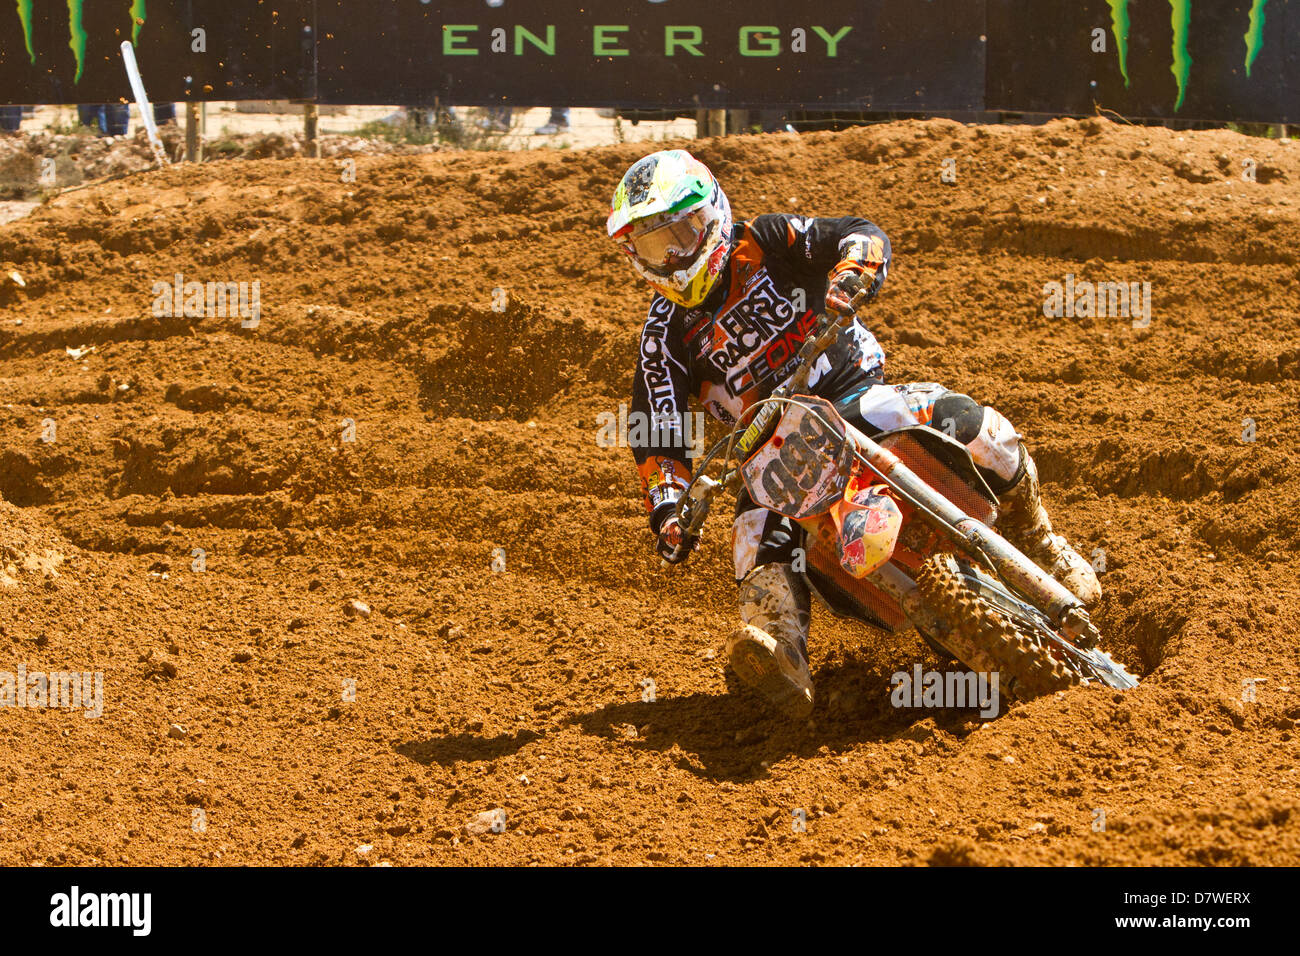 Agueda, Portugal, 5th May 2013, World Championship MX1, Portuguese Rui Goncalves with a KTM, 9th race 1 and 11th in race 2 Stock Photo